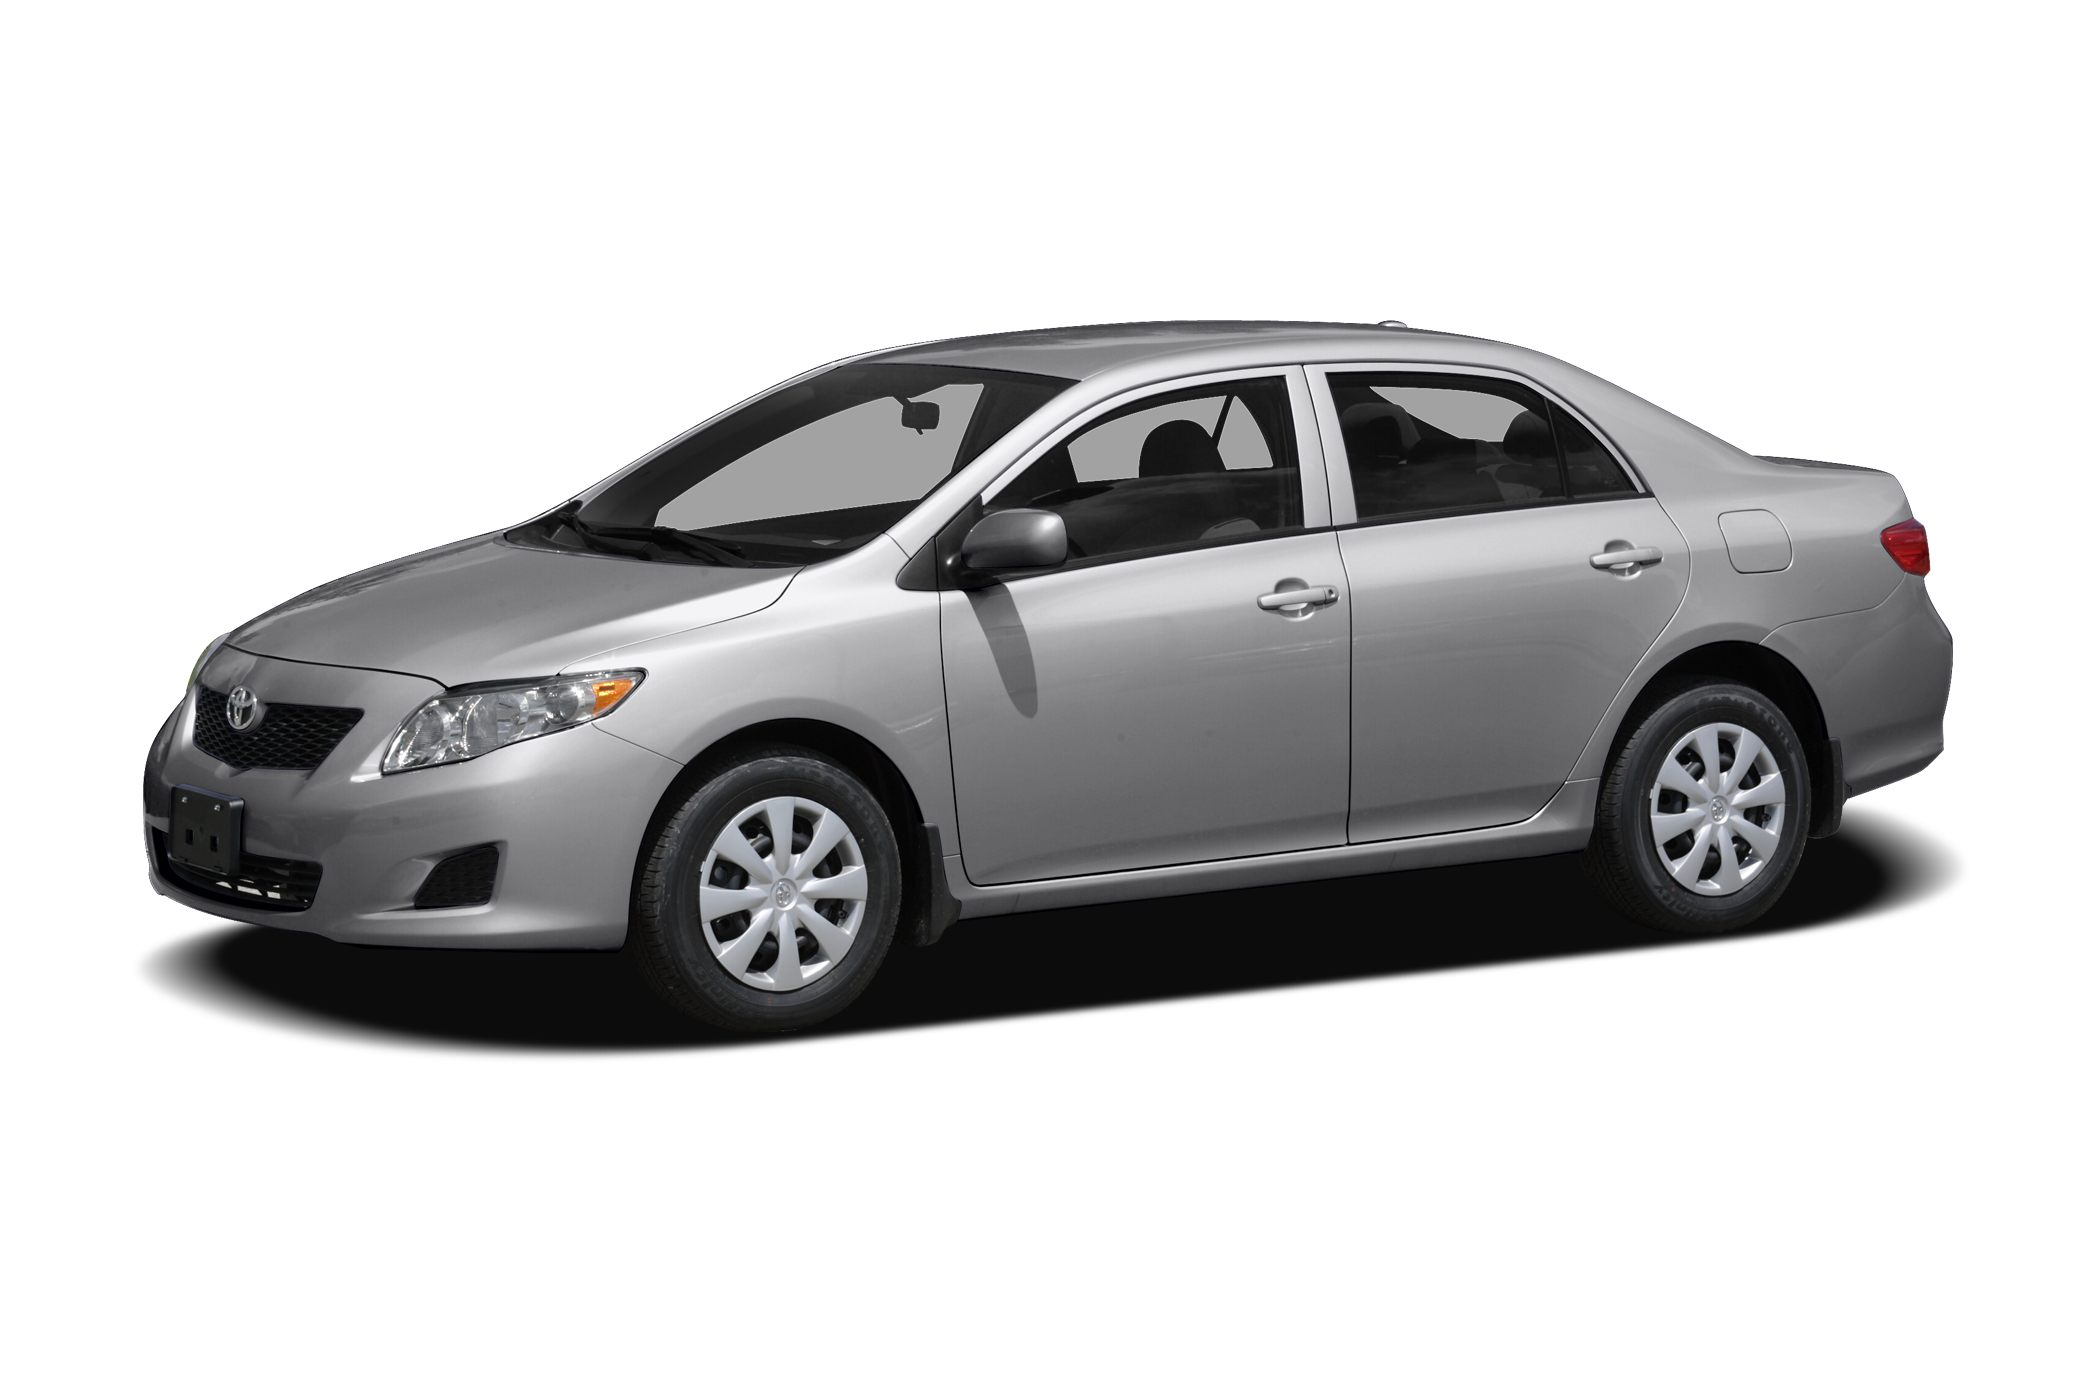 2009 Toyota Corolla LE WAS 11988 PRICED TO MOVE 1400 below Kelley Blue Book FUEL EFFICIENT